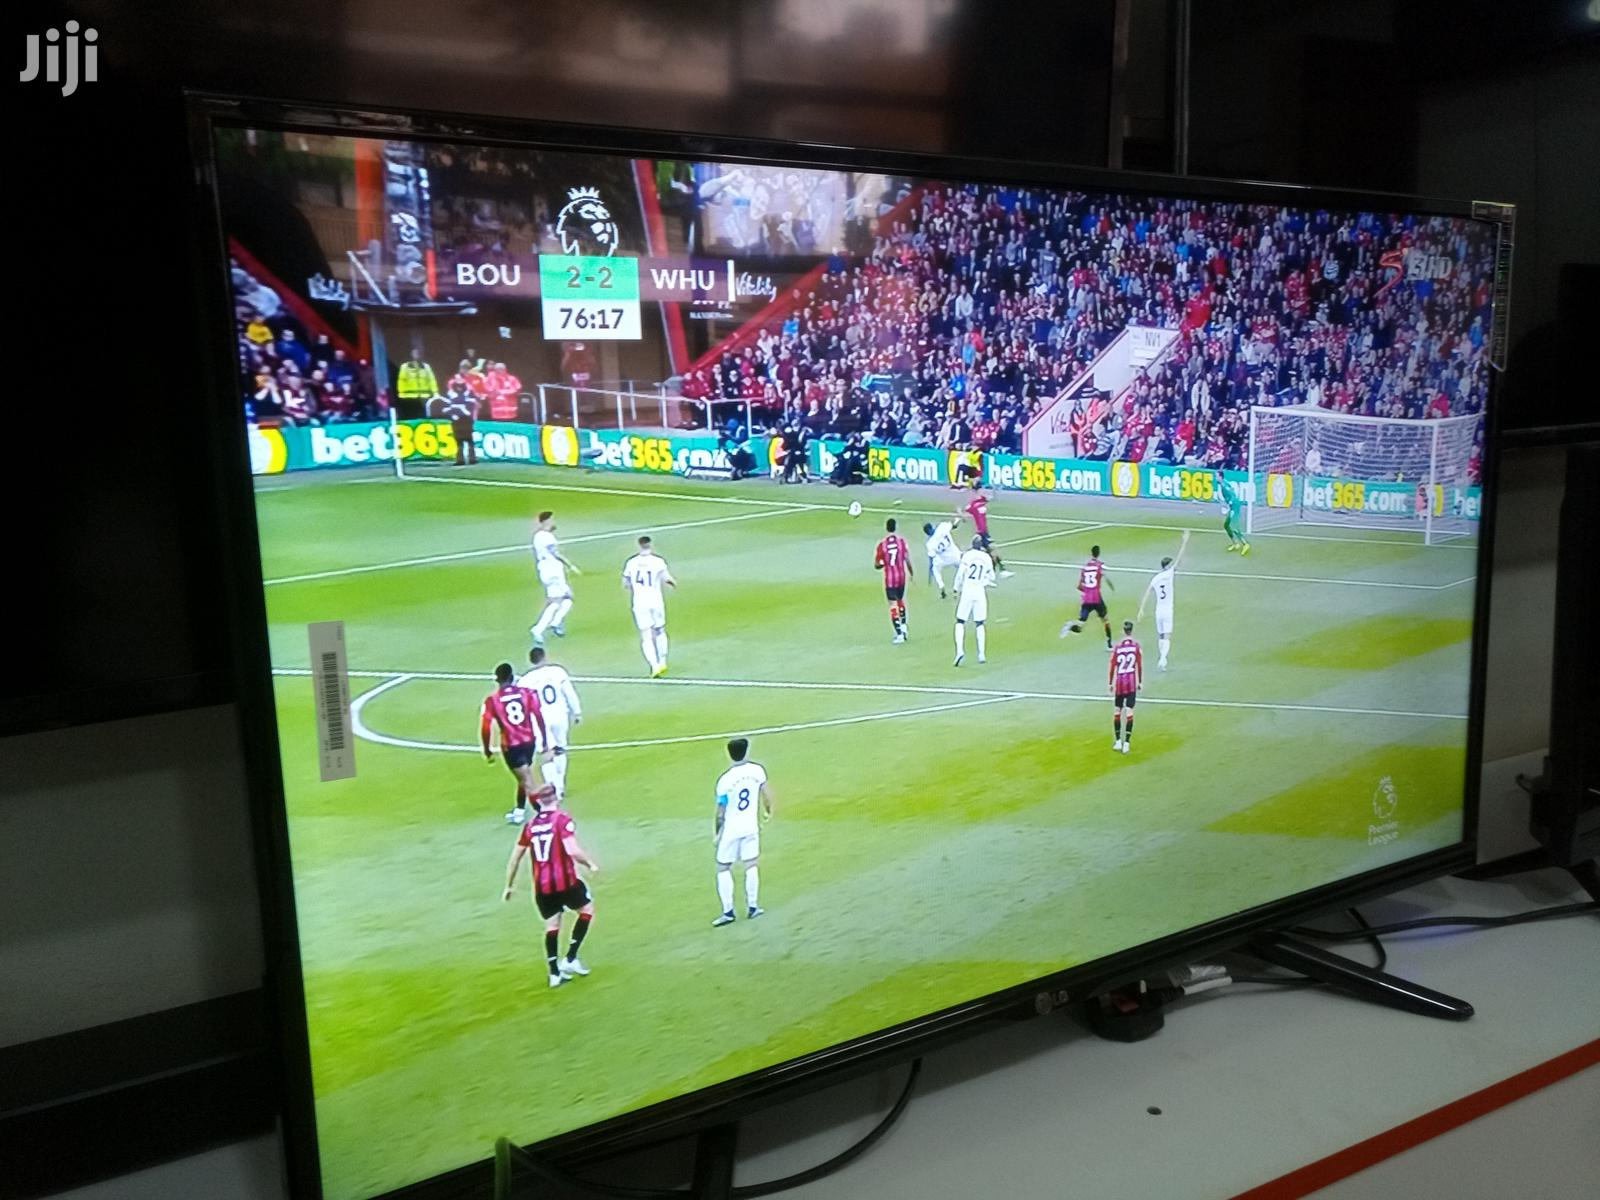 LG Led Flat Screen TV 42 Inches | TV & DVD Equipment for sale in Kampala, Central Region, Uganda